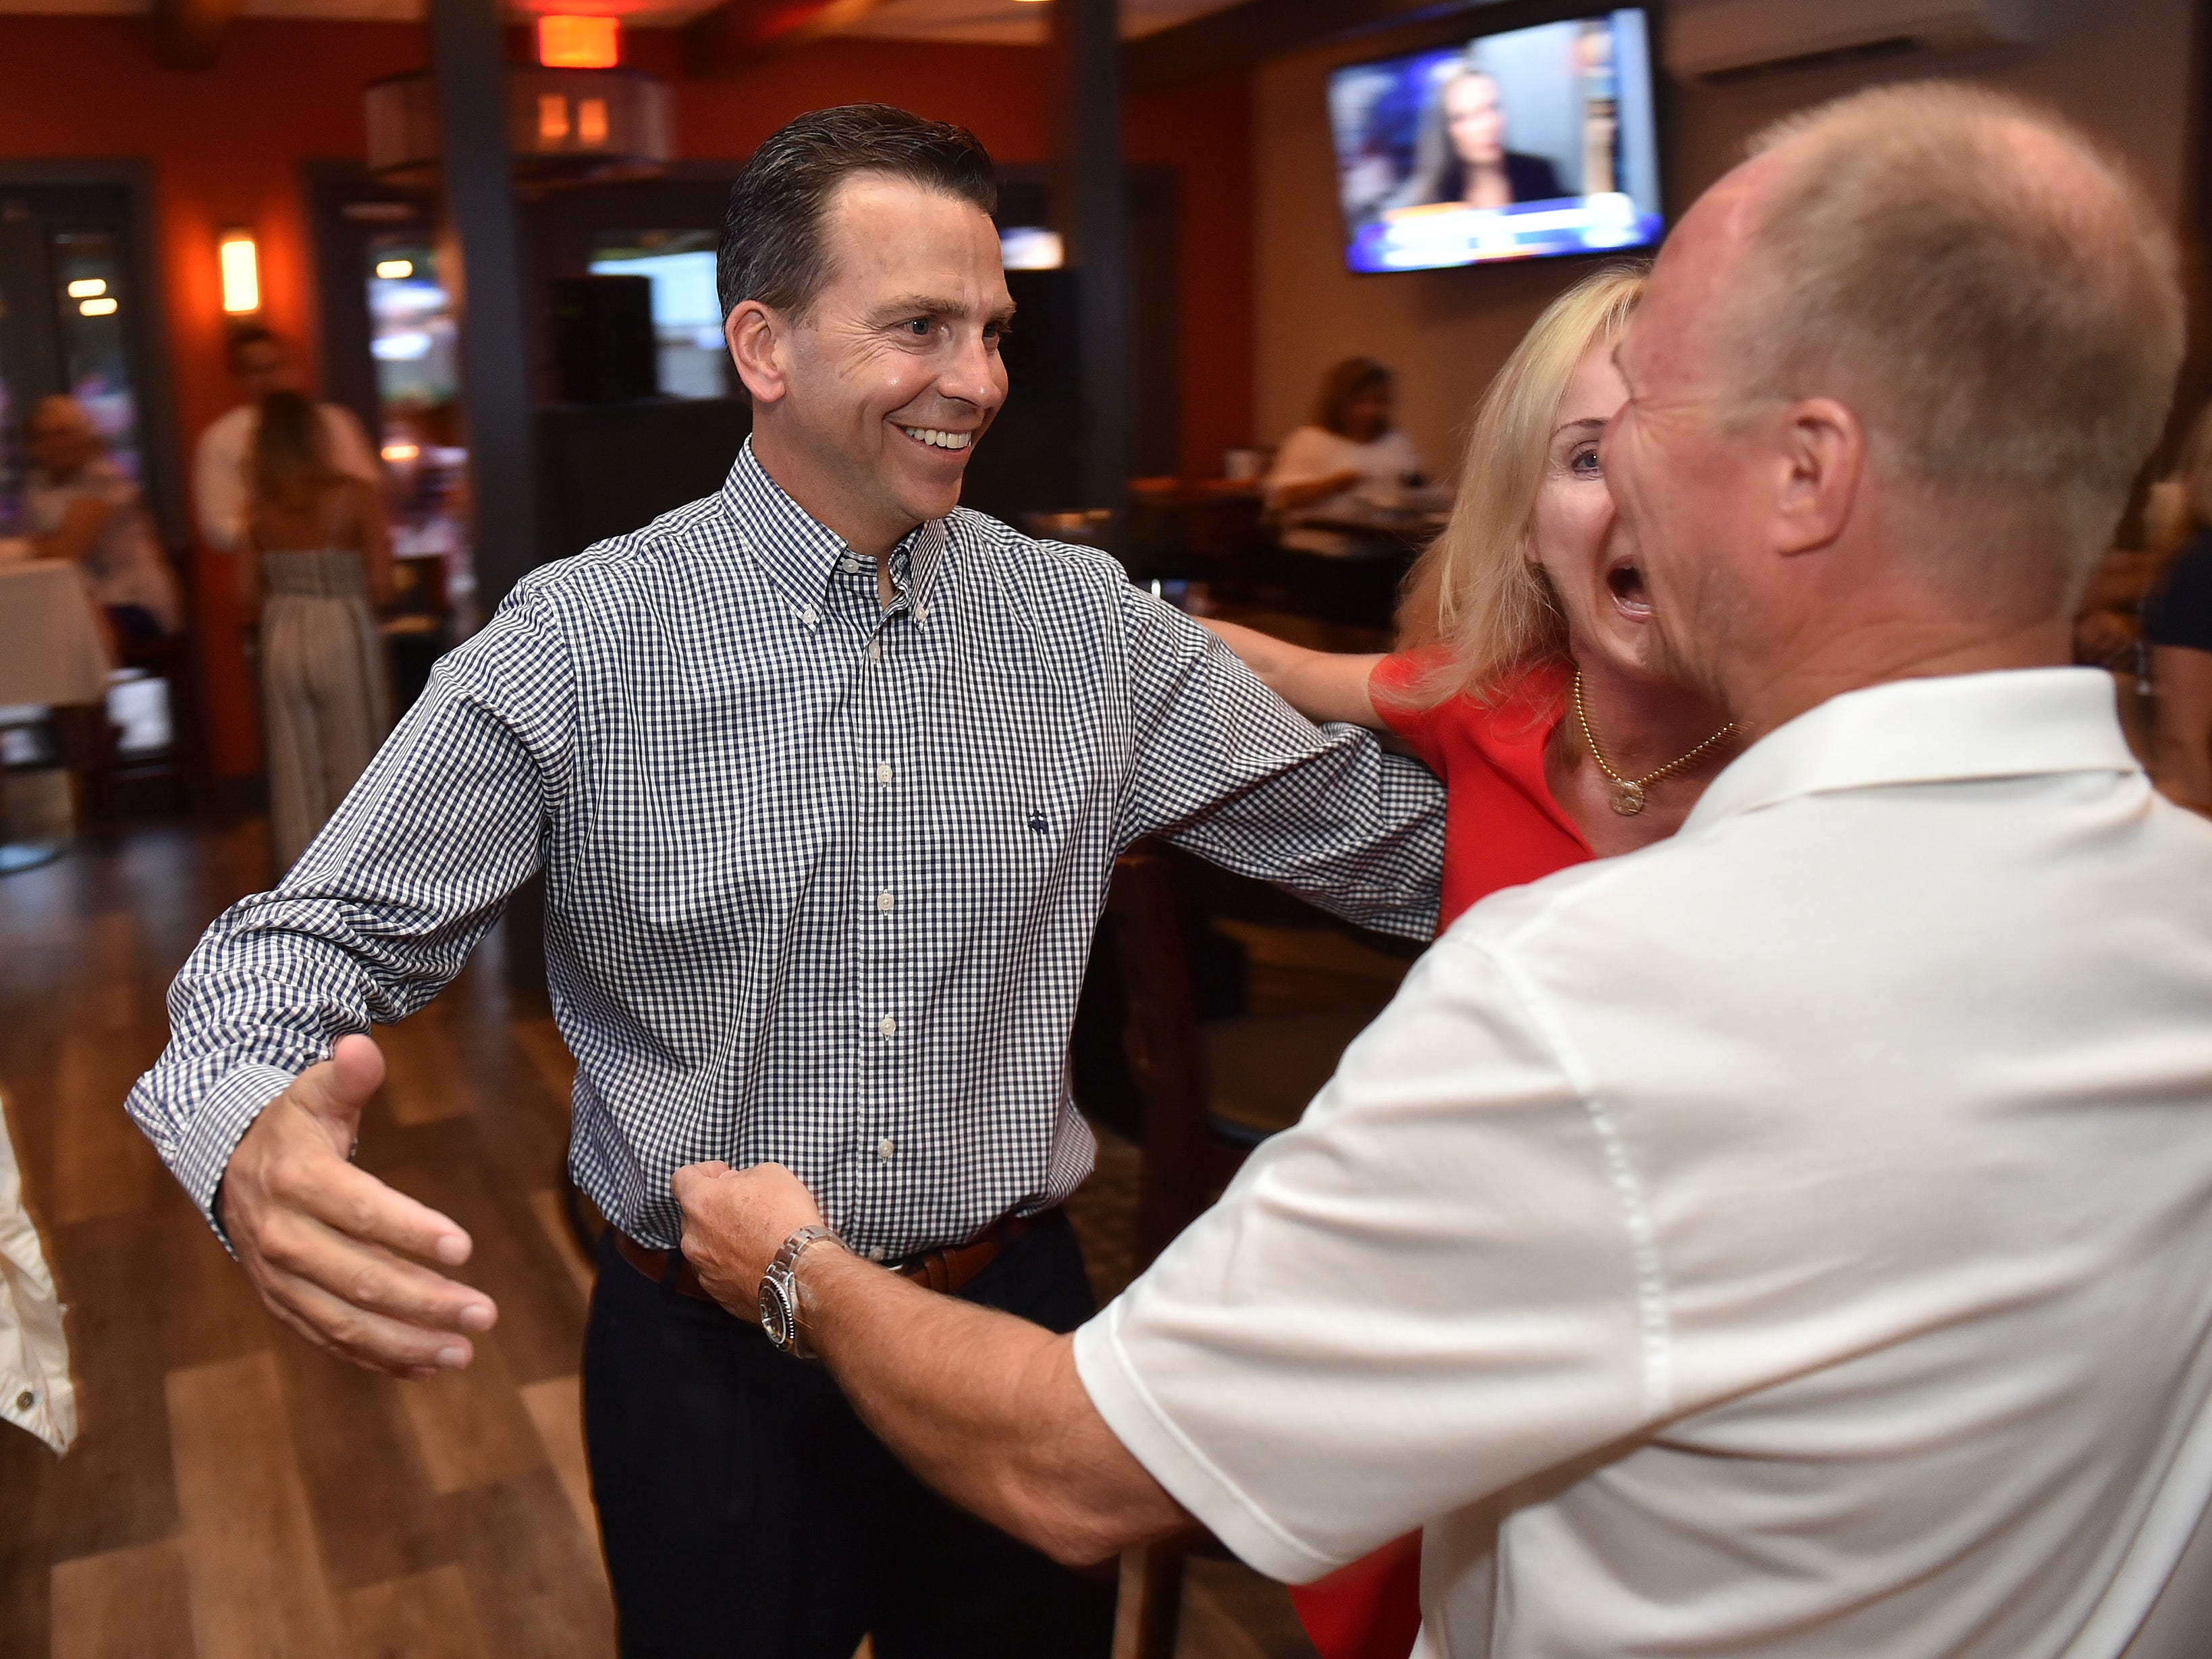 """Toby Overdorf (from left) and his wife Maggie are greeted by supporter John Leighton as they celebrates Overdorf's win over Sasha Dadan in the Florida House District 83 Republican primary at the Talk House in Stuart on Tuesday, Aug. 28, 2018. Overdorf will face Democrat Matt Theobald, a Jensen Beach teacher, in the Nov. 6 general election for the two-year seat that represents parts of Martin and St. Lucie counties, currently held by Republican Rep. Gayle Harrell. """"I'm so grateful for all the support that we have from our community, and from the folks that have come out right and left to help us and support us throughout Martin and St Lucie,"""" Toby Overdorf said. """"I'm really looking forward to the general (election)."""""""